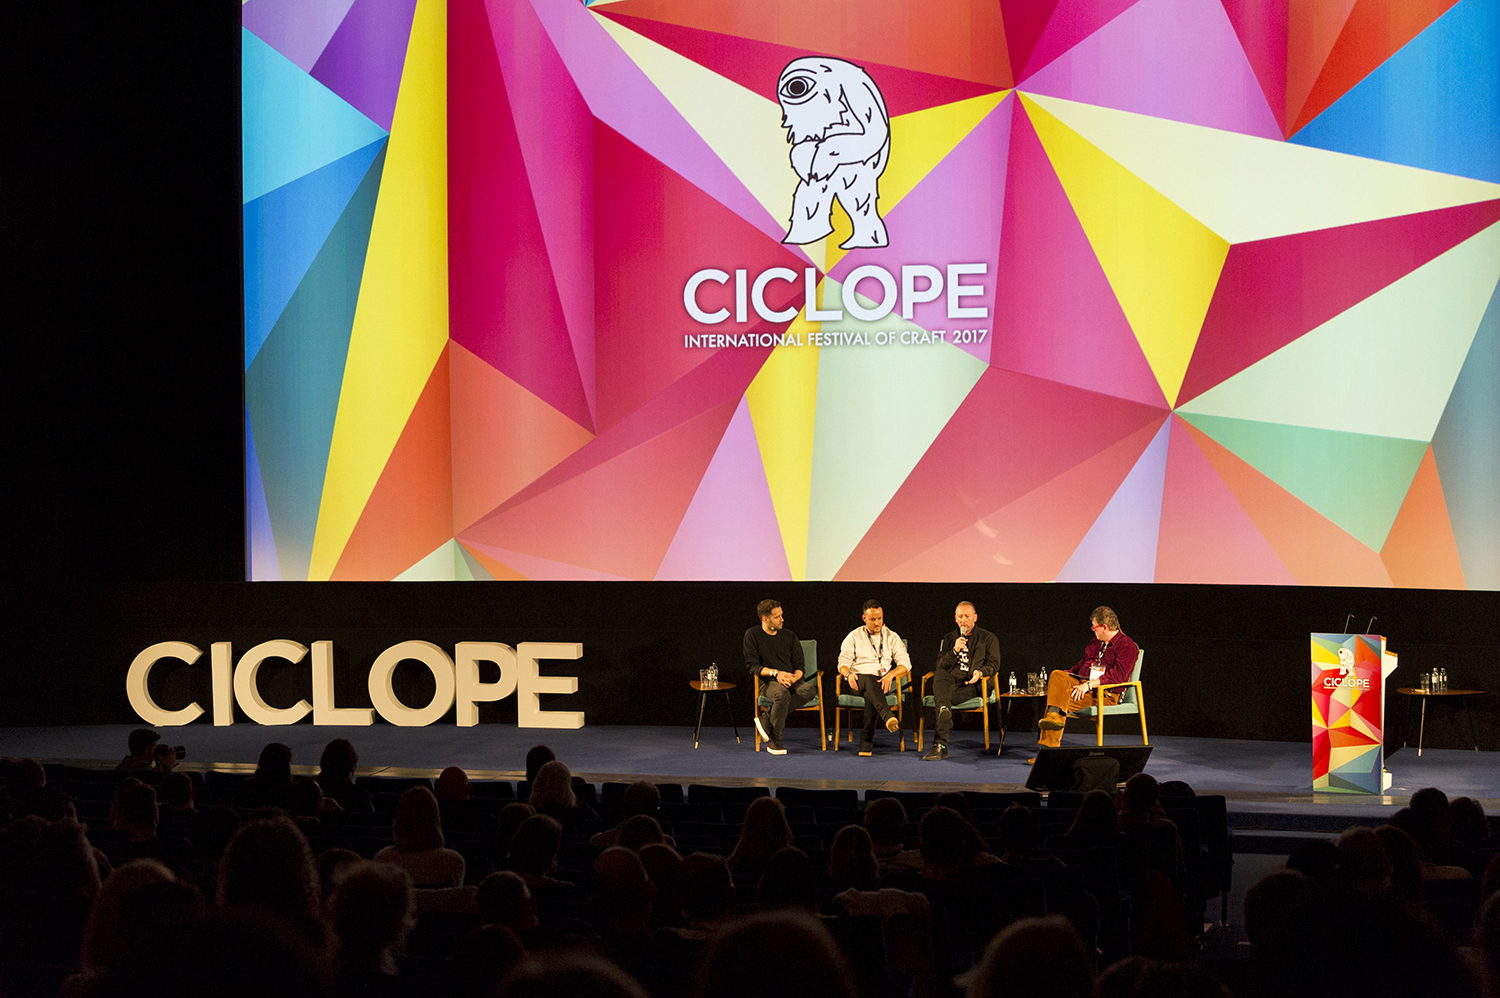 Ciclope-Festival-2017-web24.media